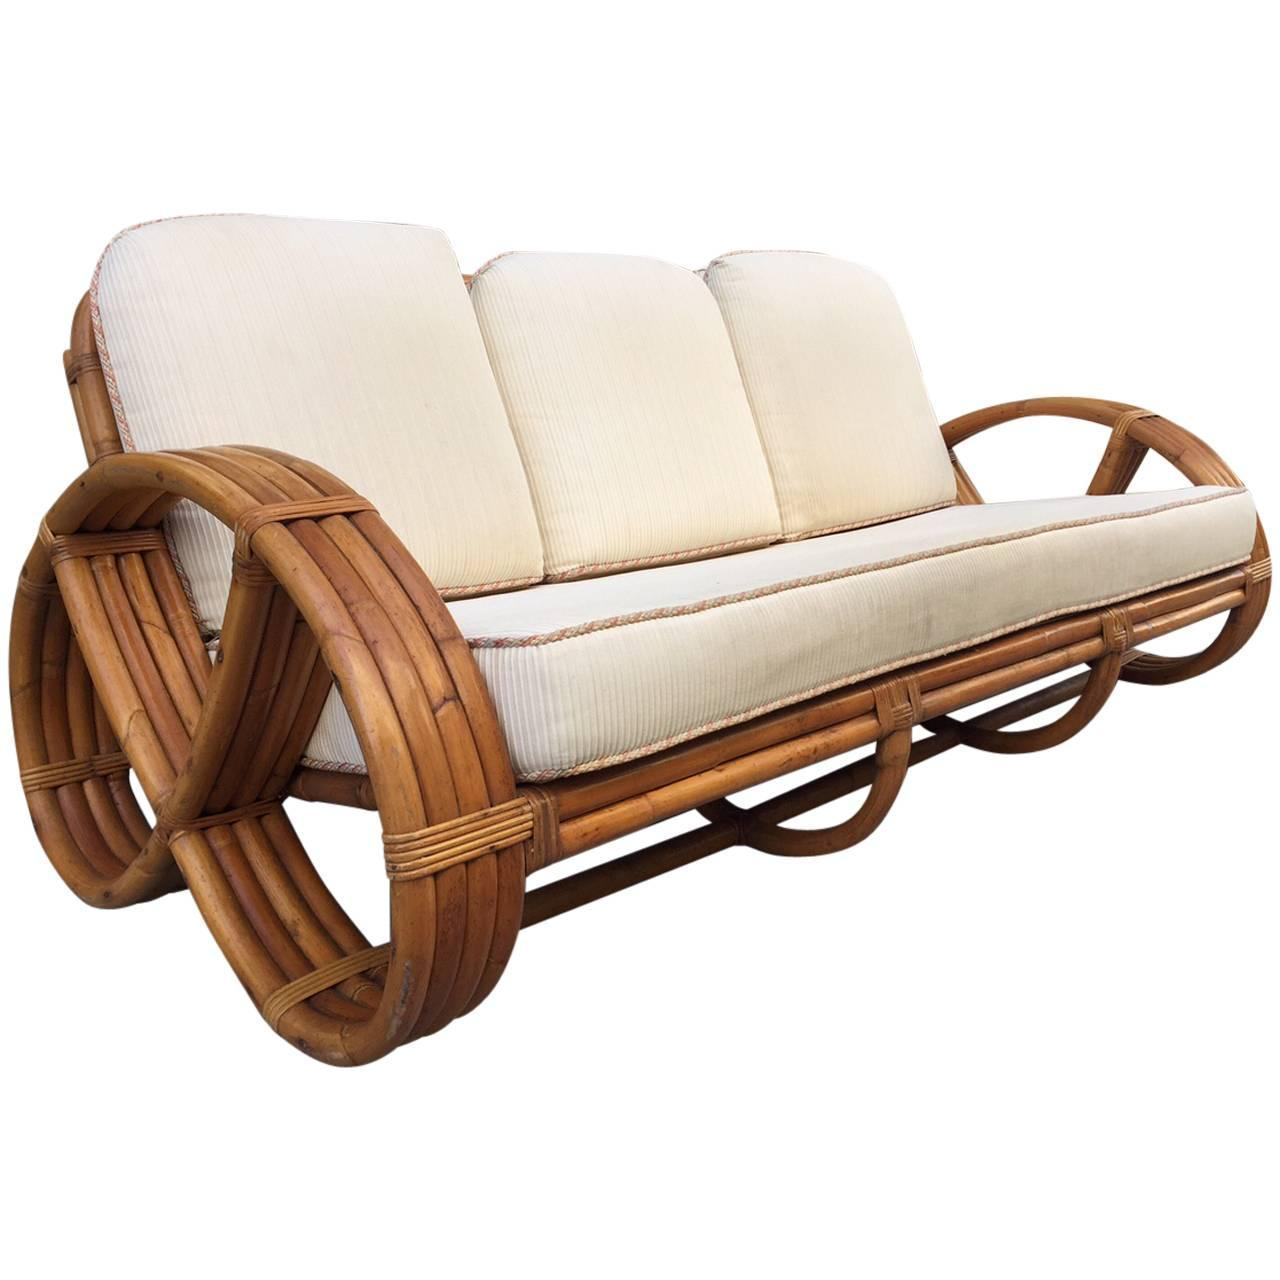 Paul Frankl Sofa ~ Rattan sofa in the style of paul frankl at stdibs